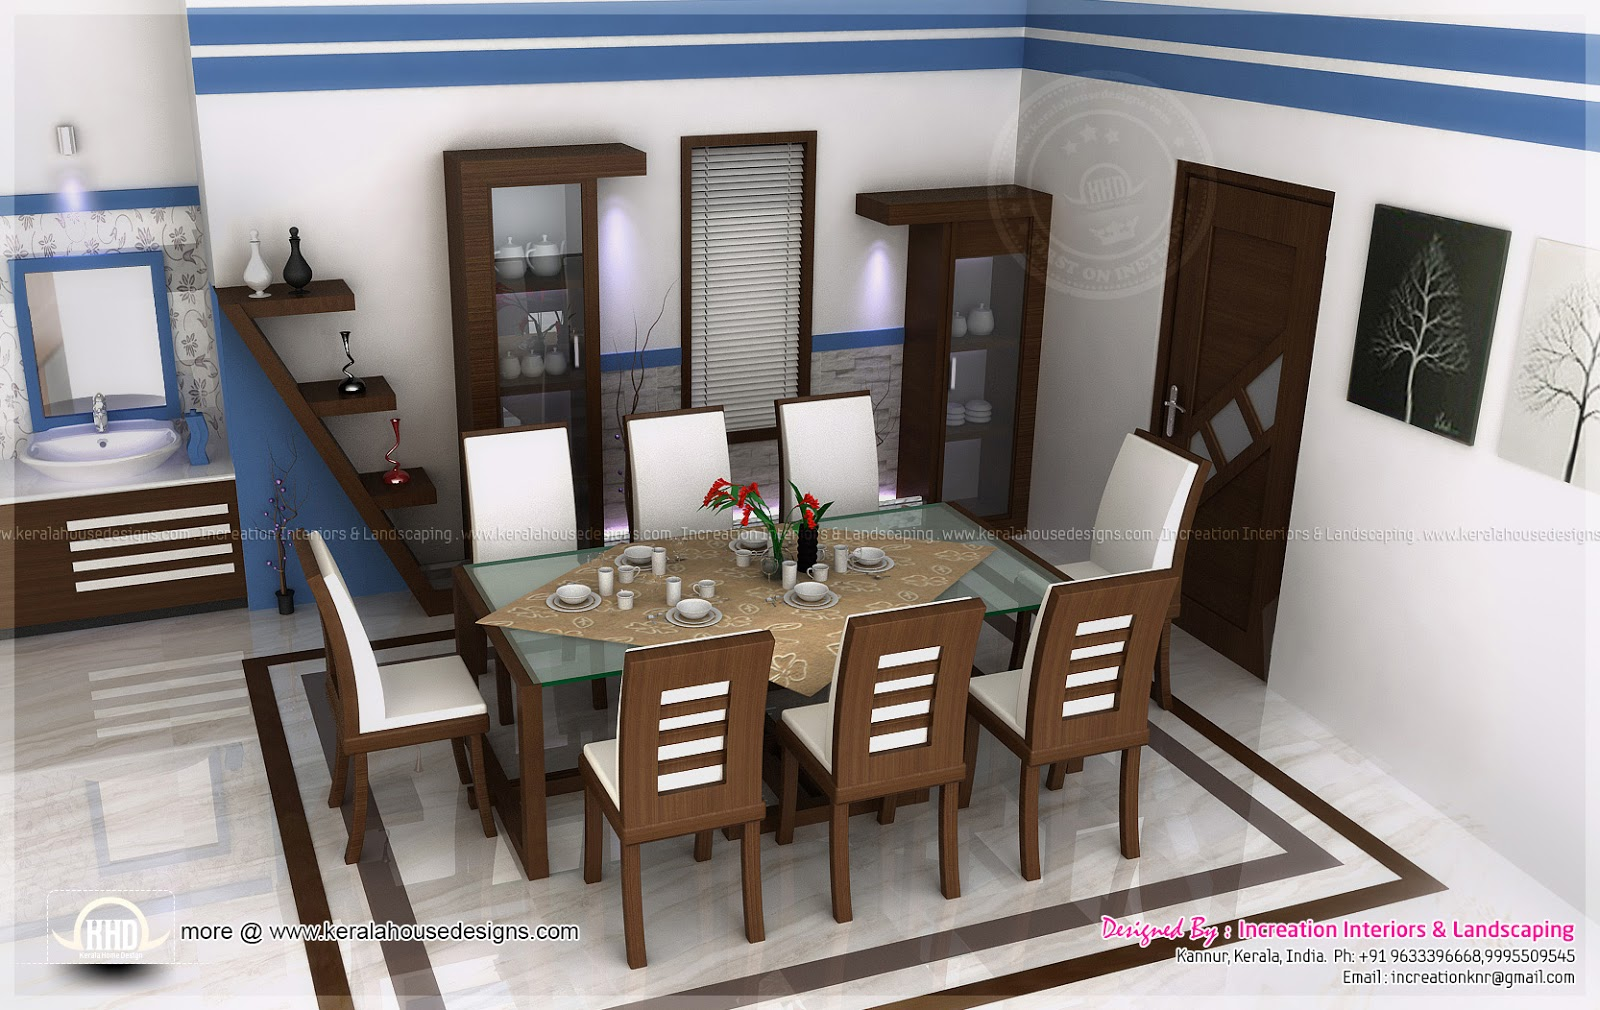 House interior ideas in 3d rendering kerala home design for Kerala model interior designs